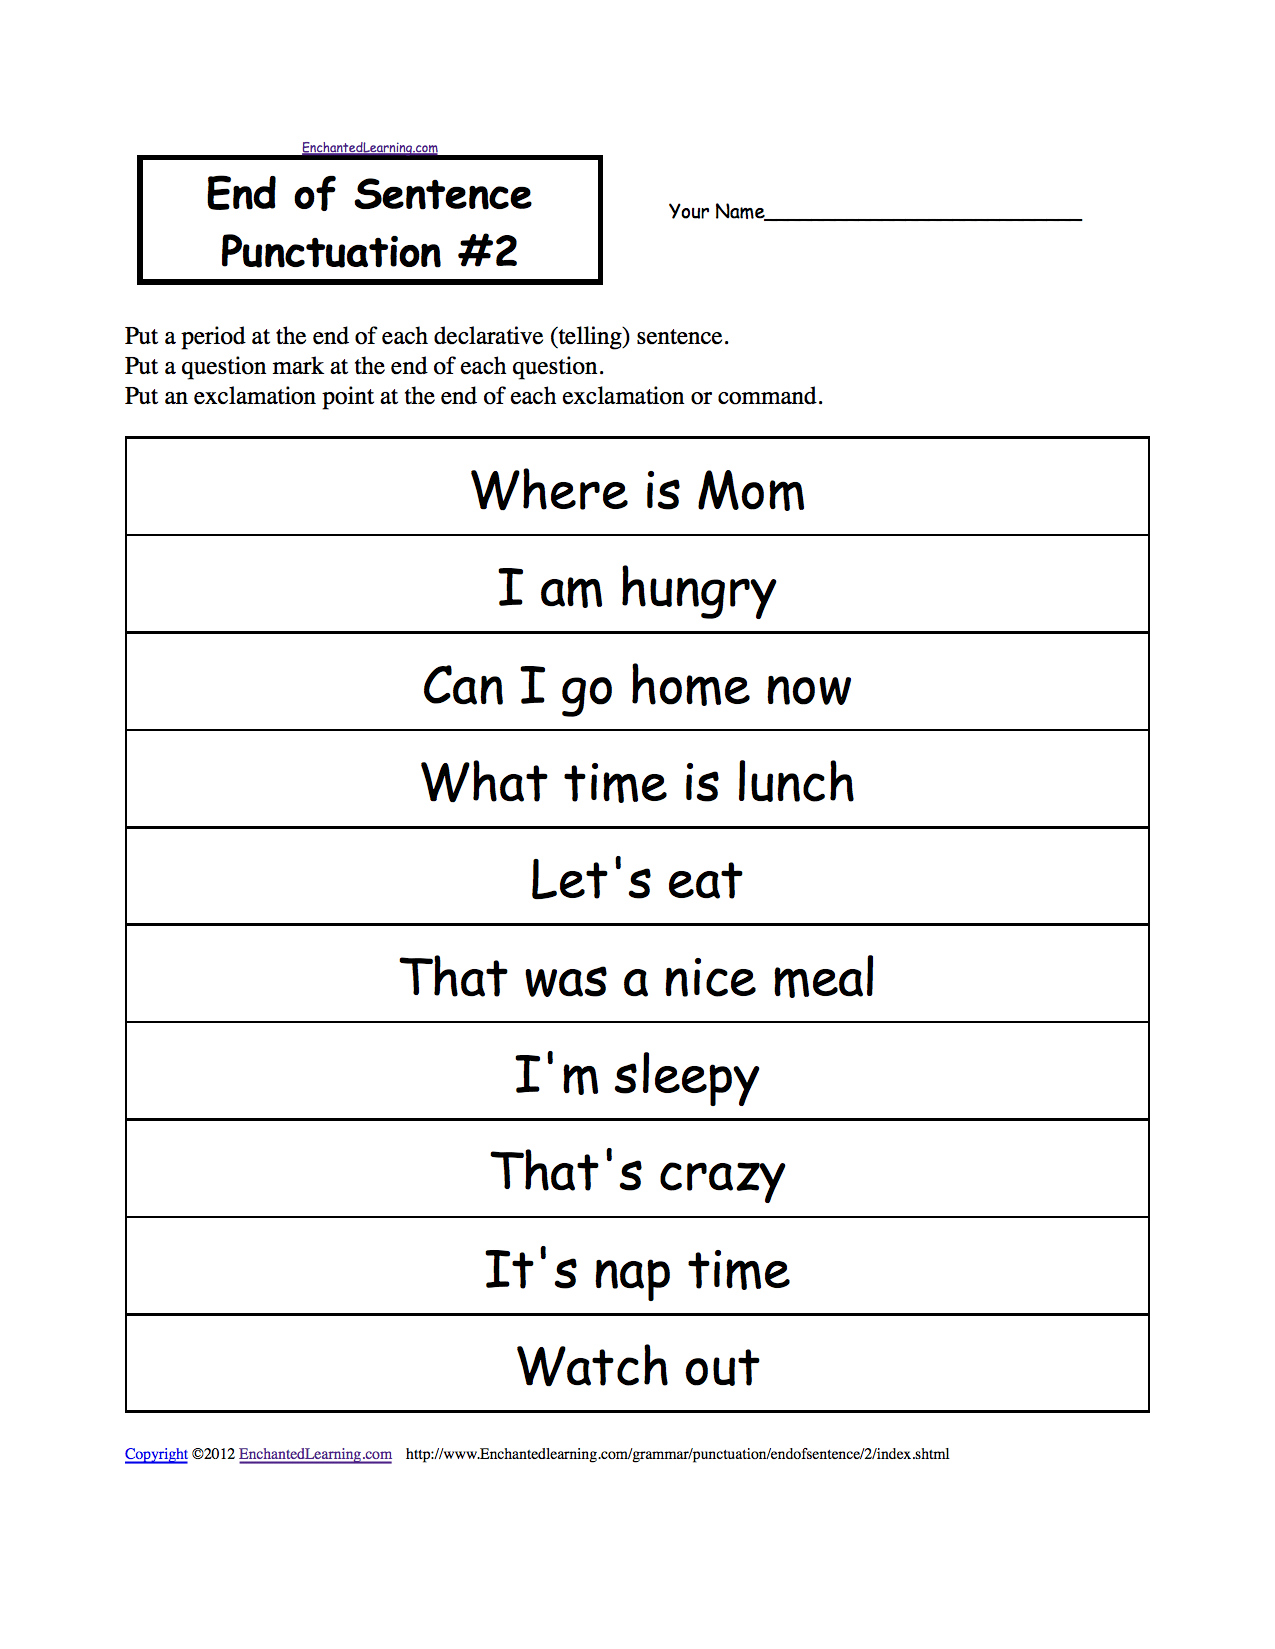 End of Sentence Punctuation, Printable Worksheets. EnchantedLearning ...